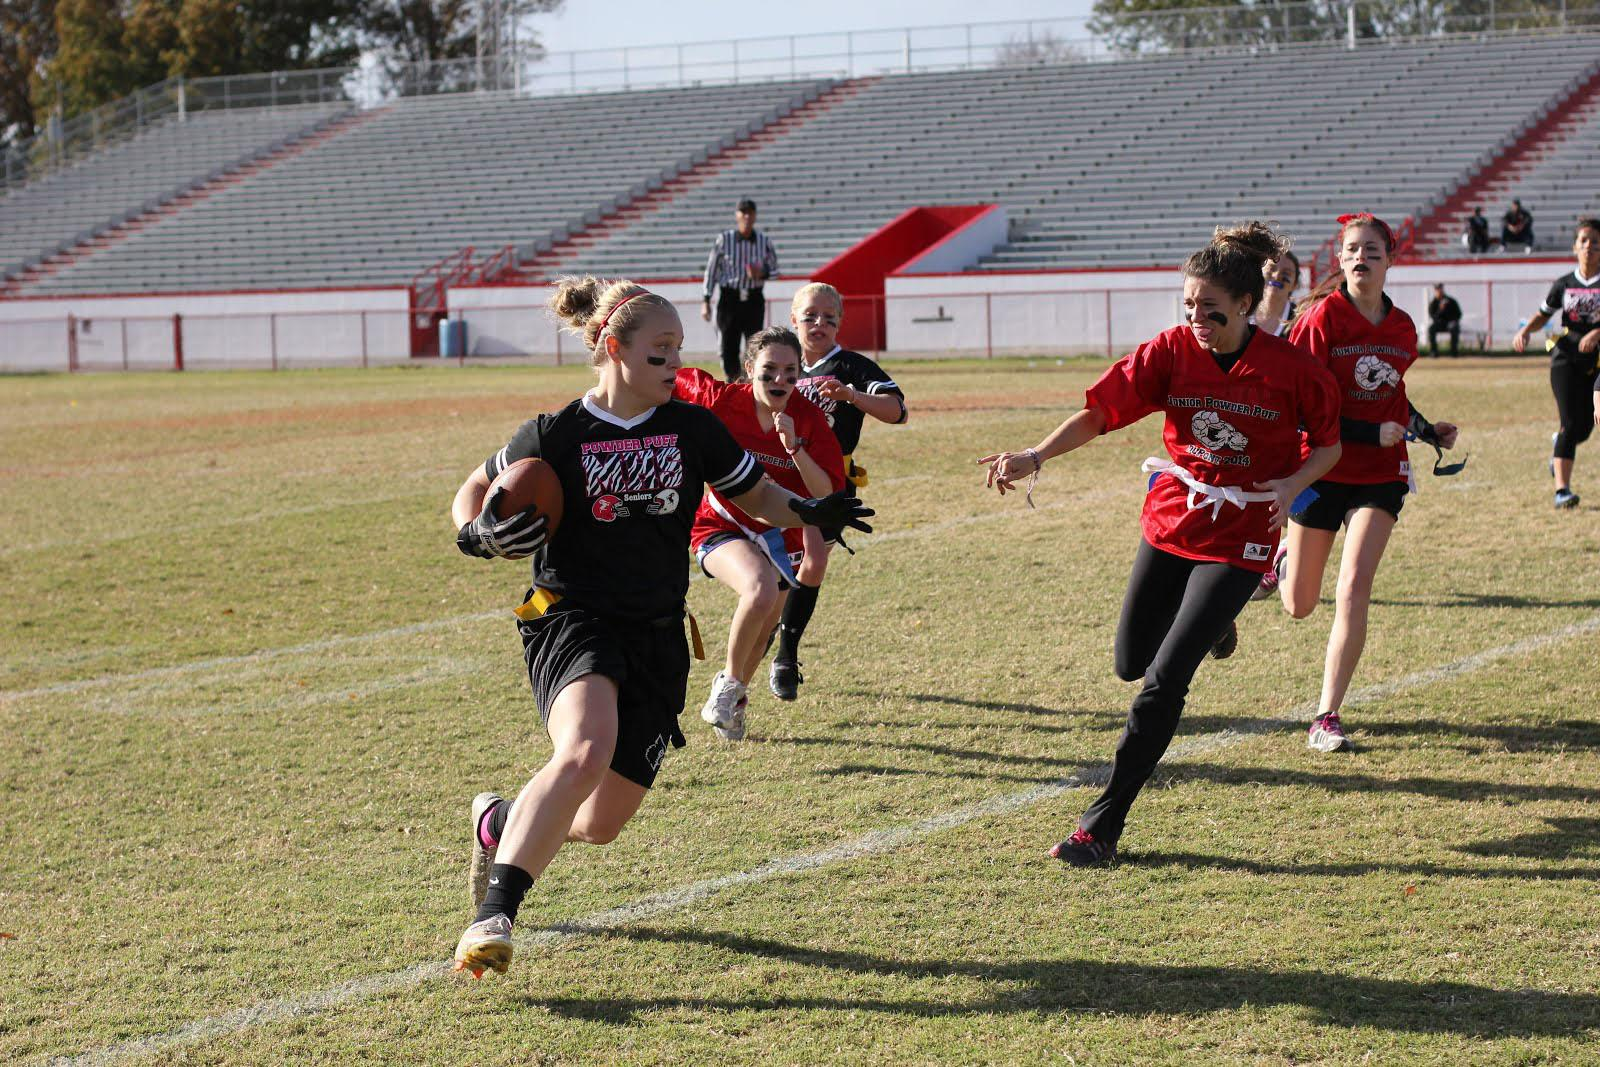 Wide receiver, katie Long (12) runs the ball down the sideline for a touchdown.